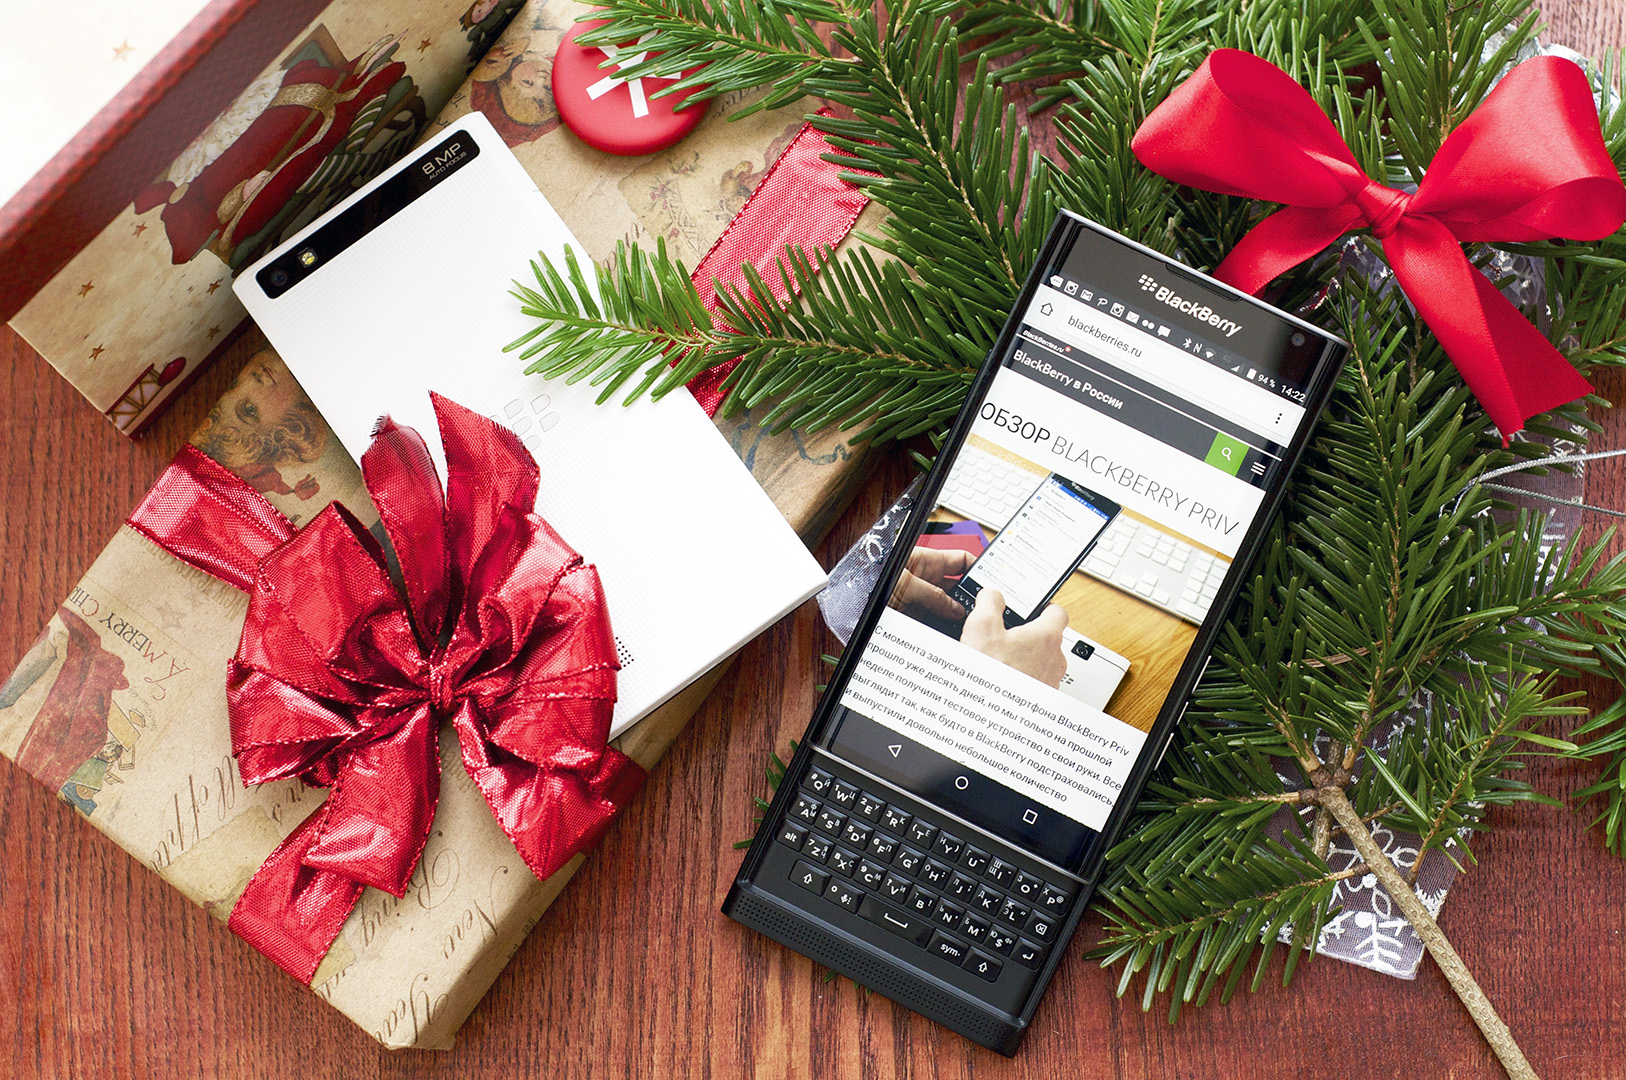 BlackBerry-New-Year-25